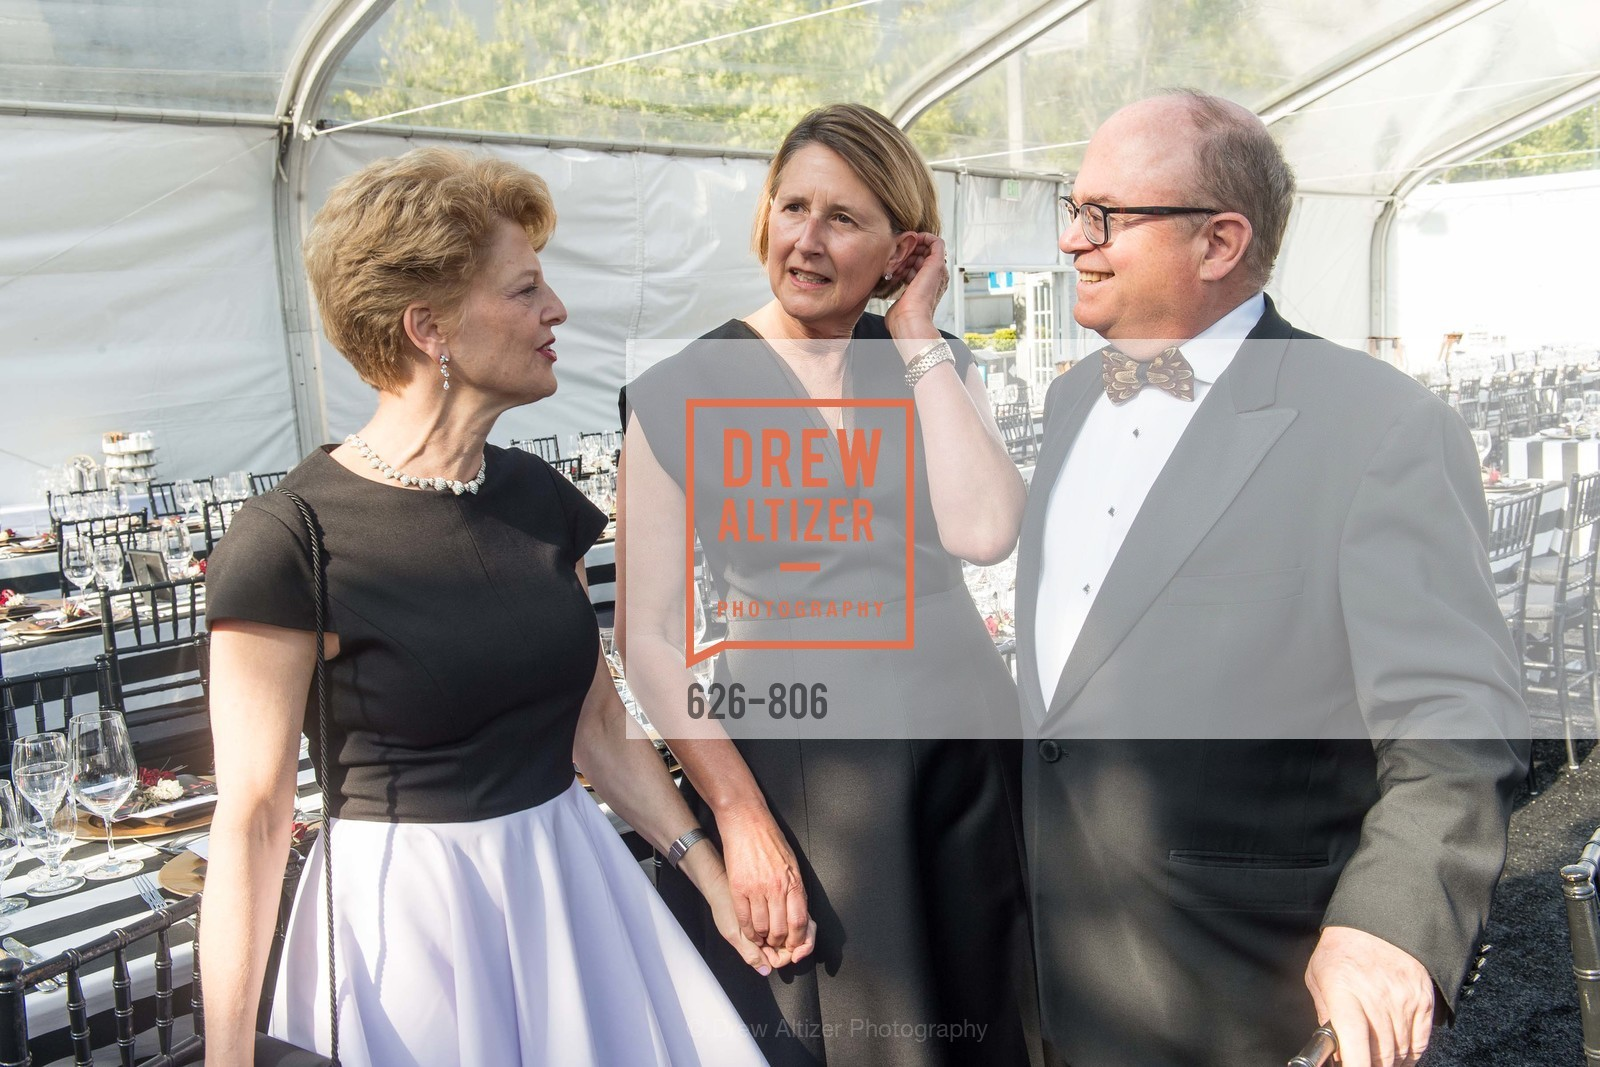 Carey Perloff, Prisca Geeslin, A.C.T. Gala Come Get Stranded, US, April 26th, 2015,Drew Altizer, Drew Altizer Photography, full-service agency, private events, San Francisco photographer, photographer california